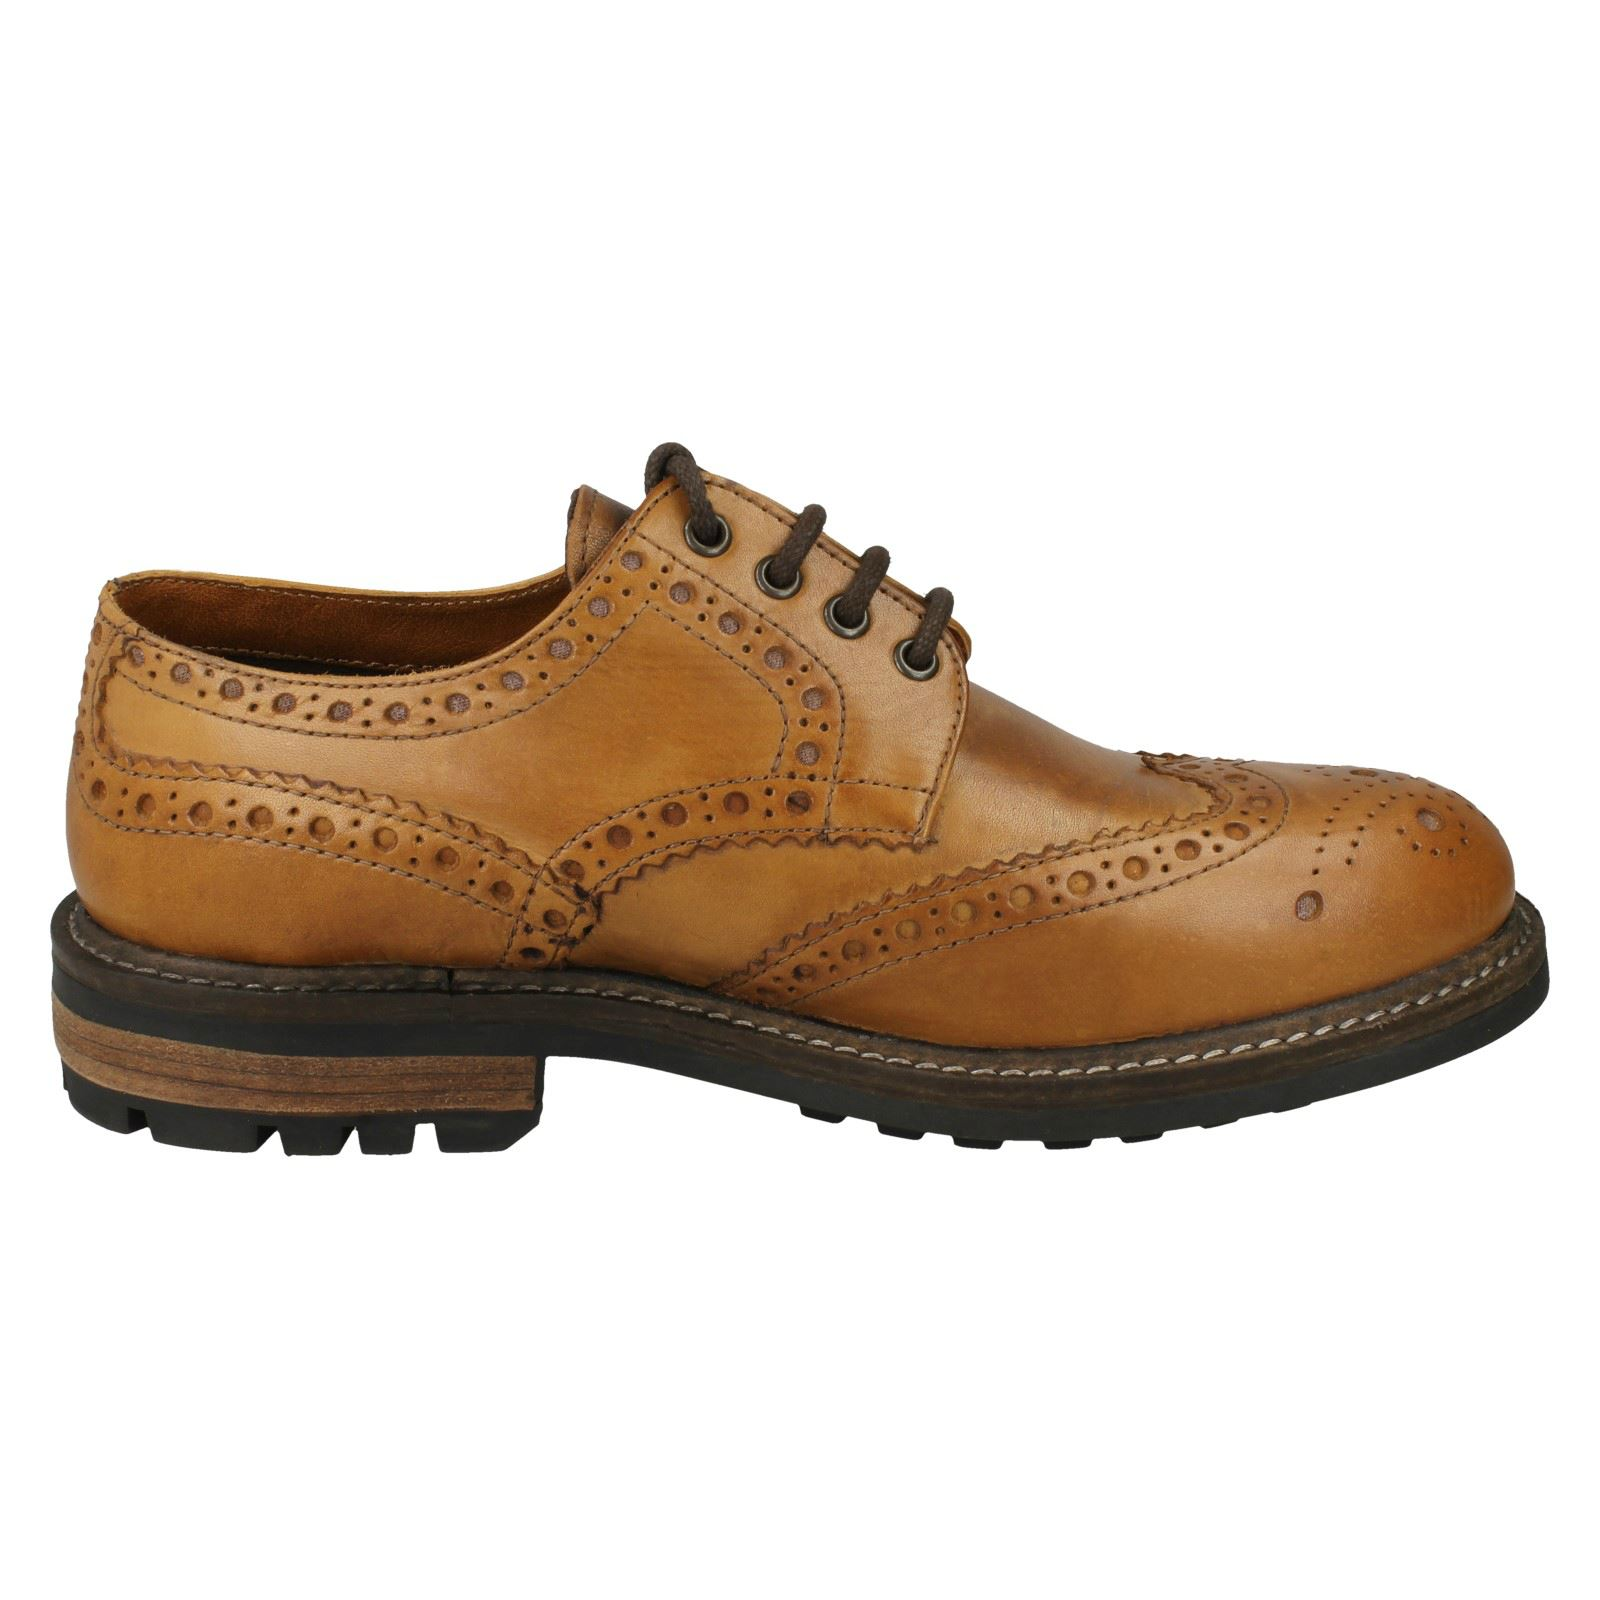 Homme-Red-Tape-formelle-Souliers-BROGUES-034-Bracken-Classic-034